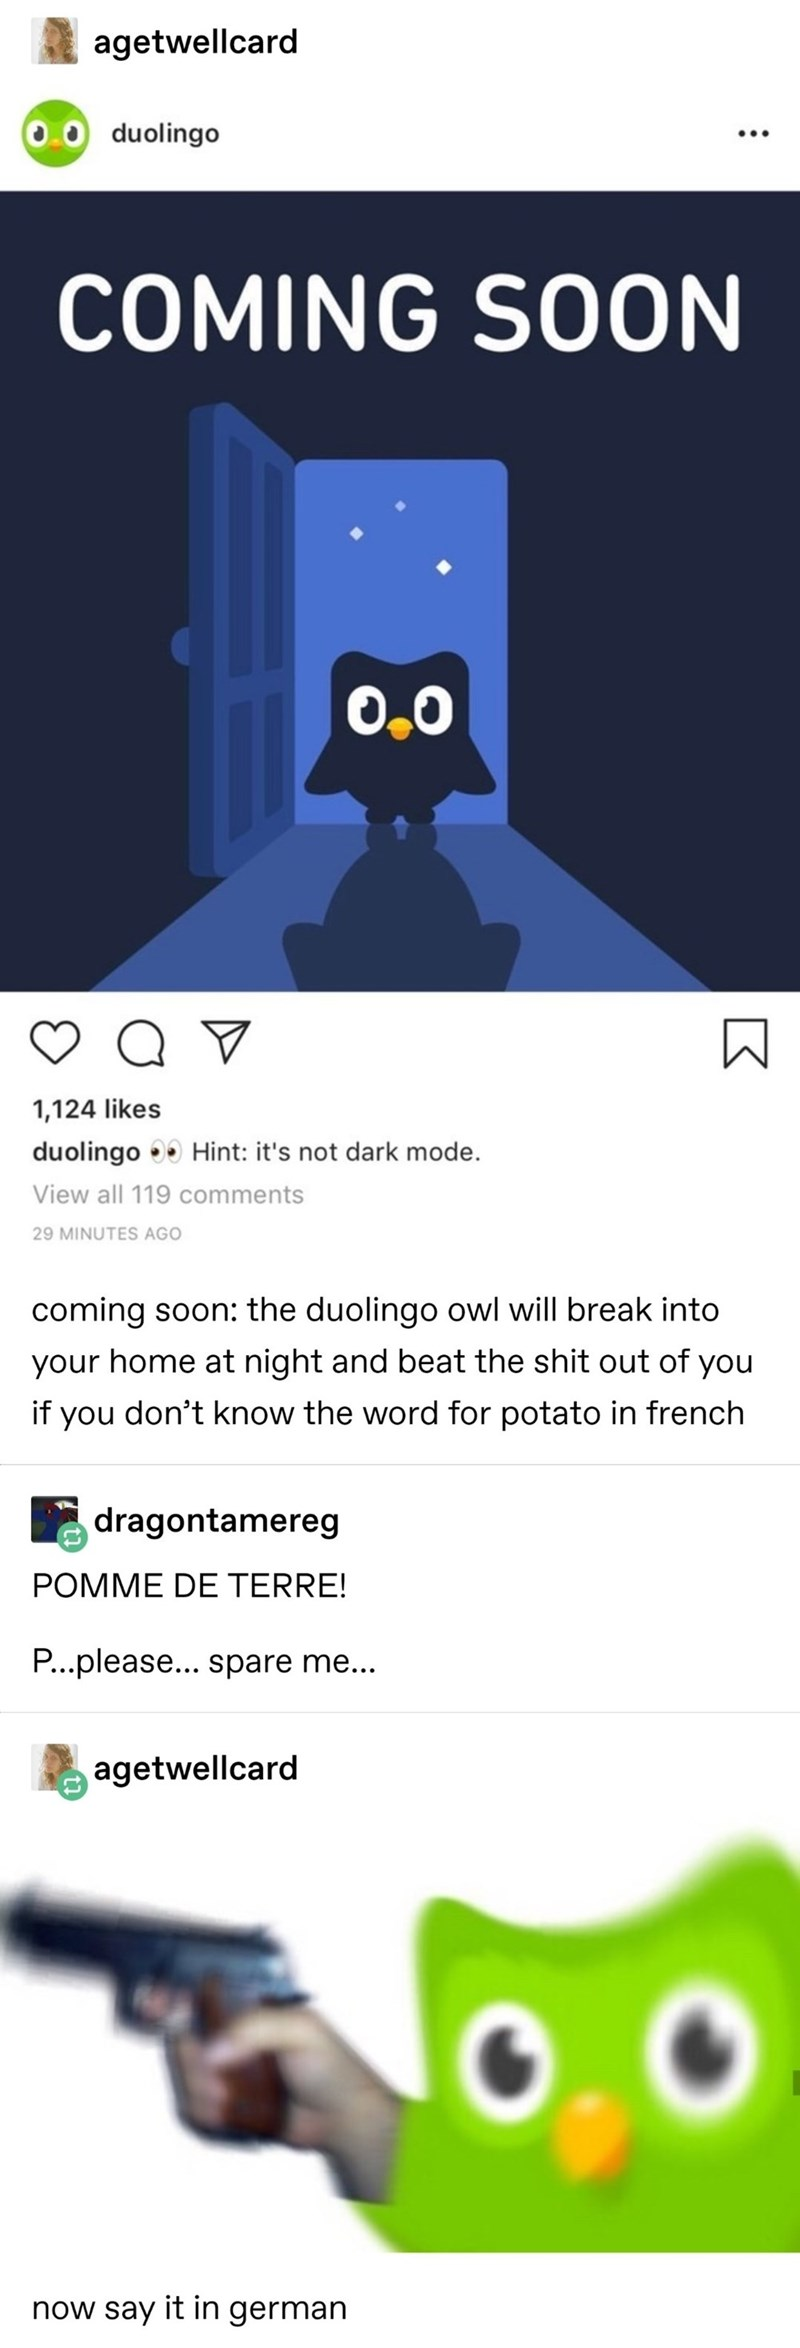 Text - agetwellcard duolingo COMING SOON O.0 Q V 1,124 likes duolingo Hint: it's not dark mode. View all 119 comments 29 MINUTES AGO coming soon: the duolingo owl will break into your home at night and beat the shit out of you if you don't know the word for potato in french dragontamereg POMME DE TERRE! P...please... spare me... agetwellcard now say it in german